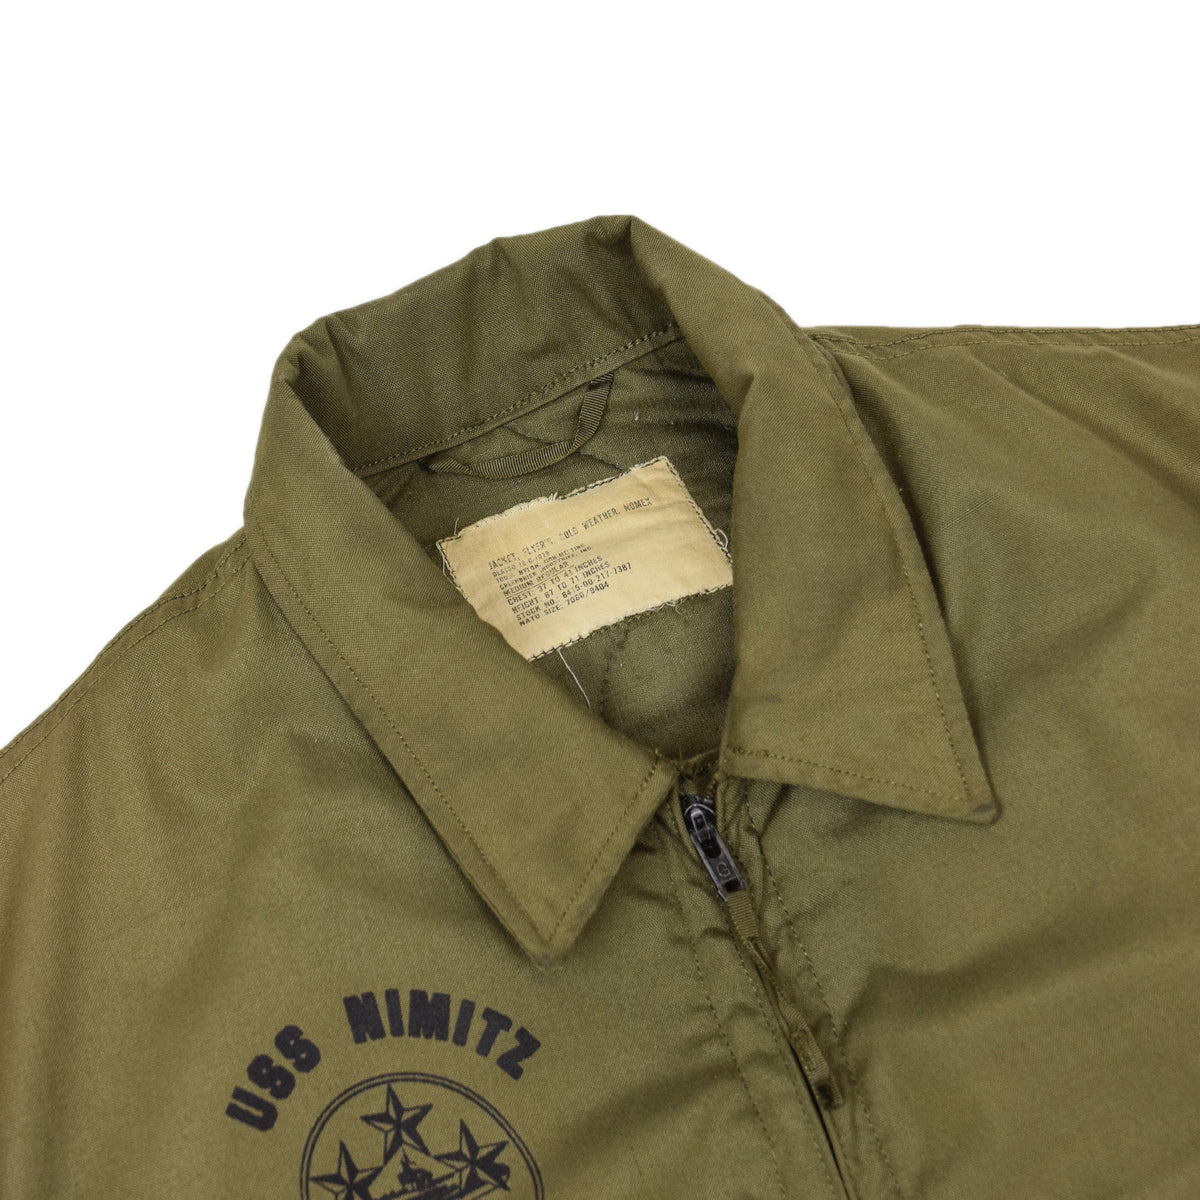 Vintage 70s US Air Force Flyer's Cold Weather USS Nimitz Nomex Bomber Jacket M collar